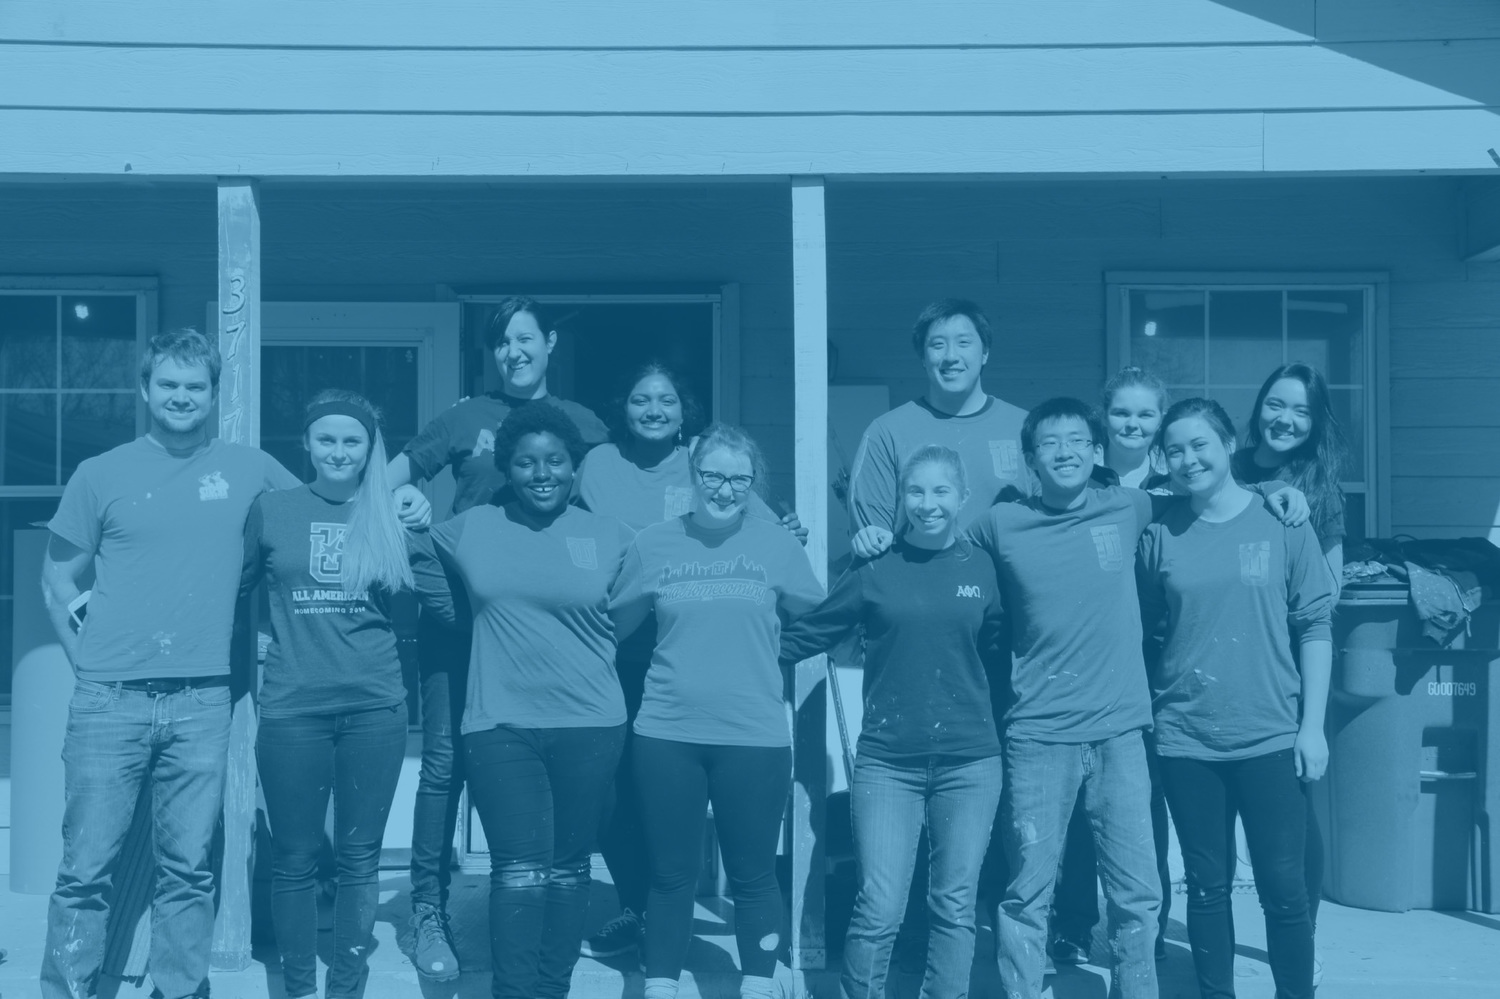 Clark howard sponsoring habitat for humanity house in tulsa - About Our Mission Strategic Focus Humans Of Habitat Events Newsletter Board Of Directors Financials Contact Us Donate Ways To Donate Home Sponsorship Donor